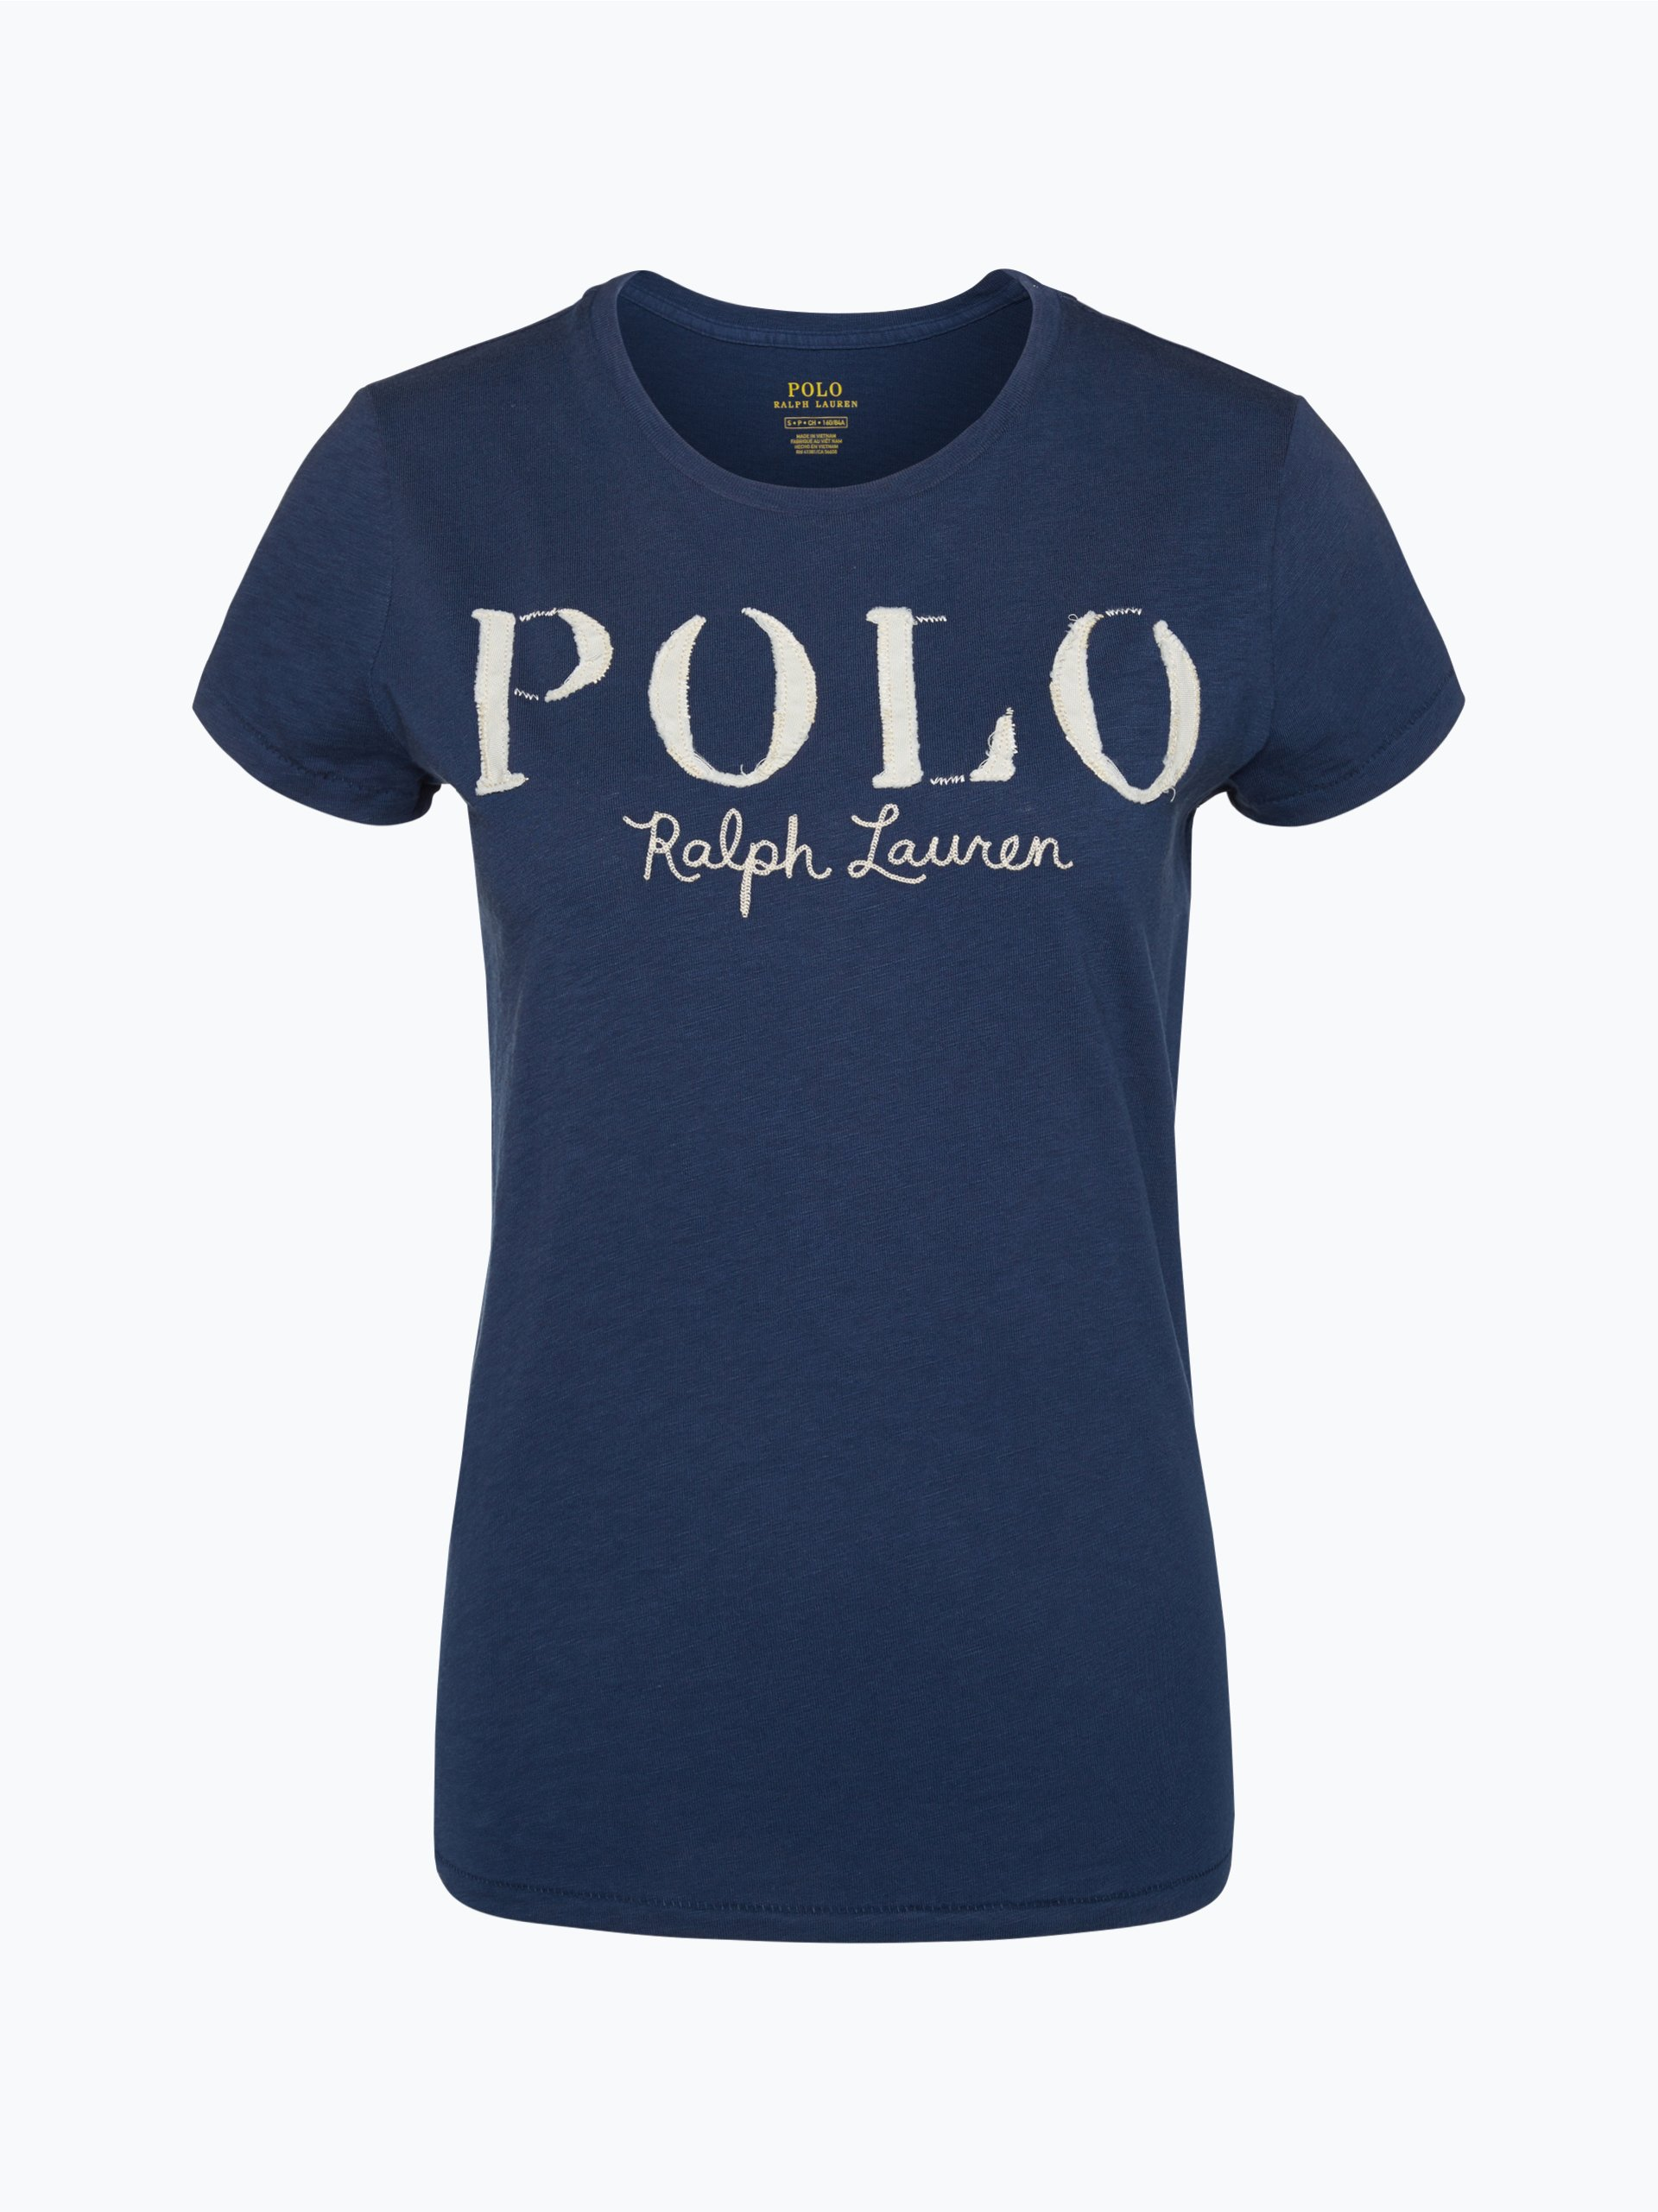 polo ralph lauren damen t shirt online kaufen peek und. Black Bedroom Furniture Sets. Home Design Ideas